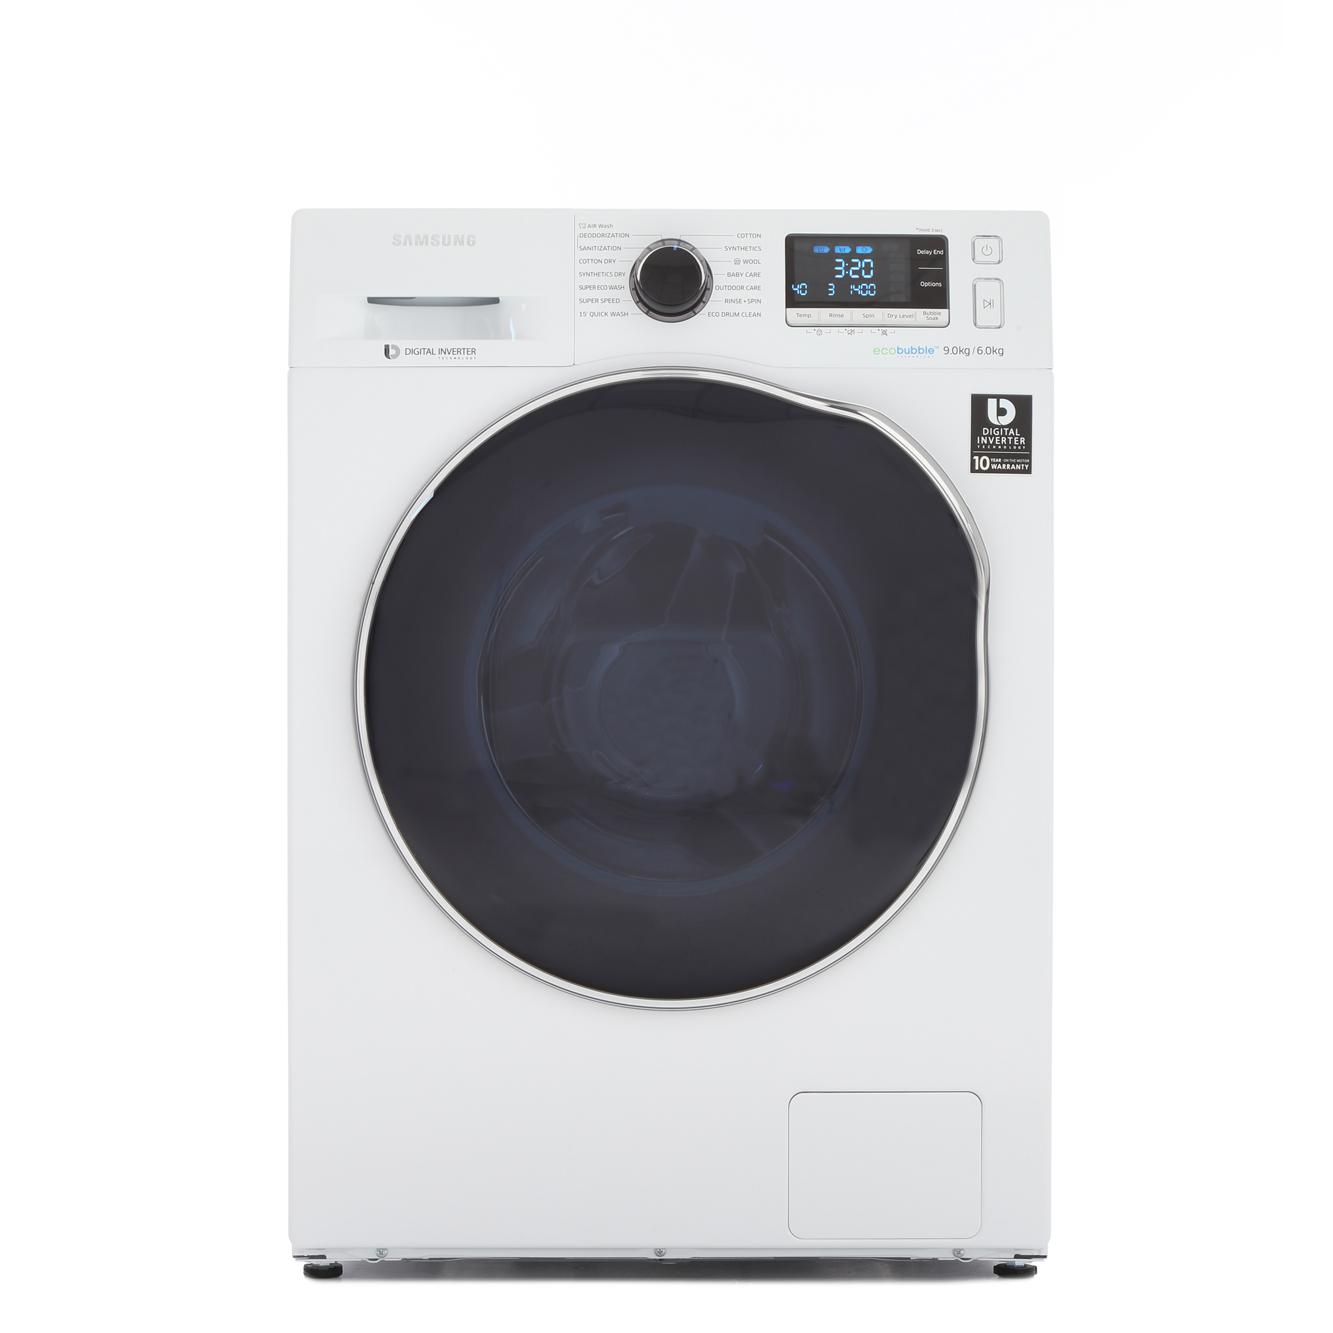 Buy Samsung Wd90j6410aw Washer Dryer White With Crystal